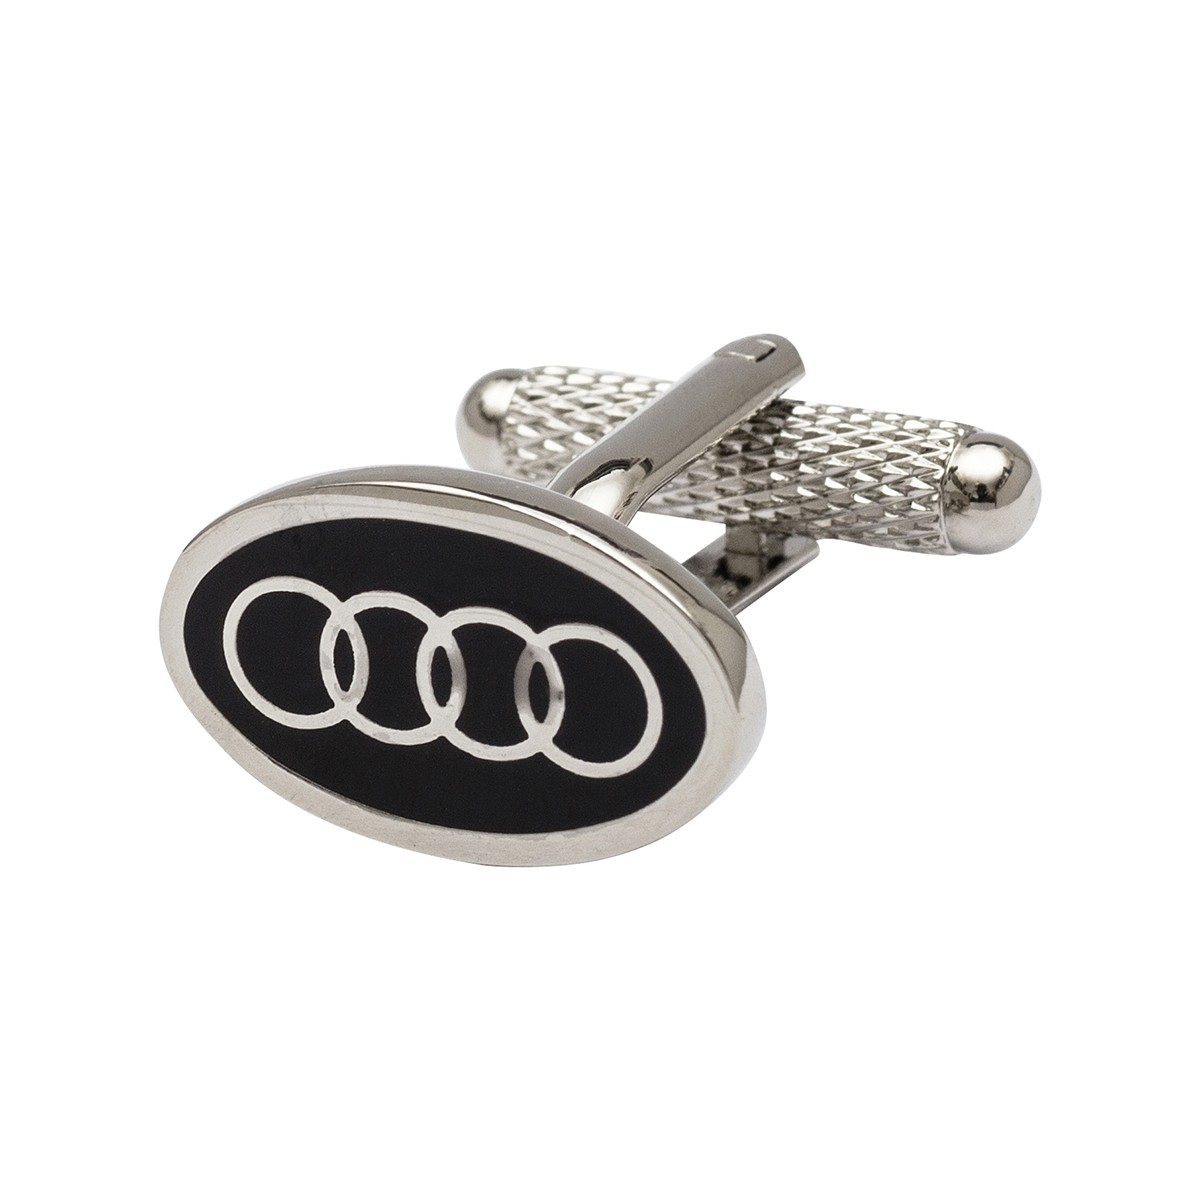 Audi Car Badge Cufflinks | Luxury Car Motoring Cufflinks